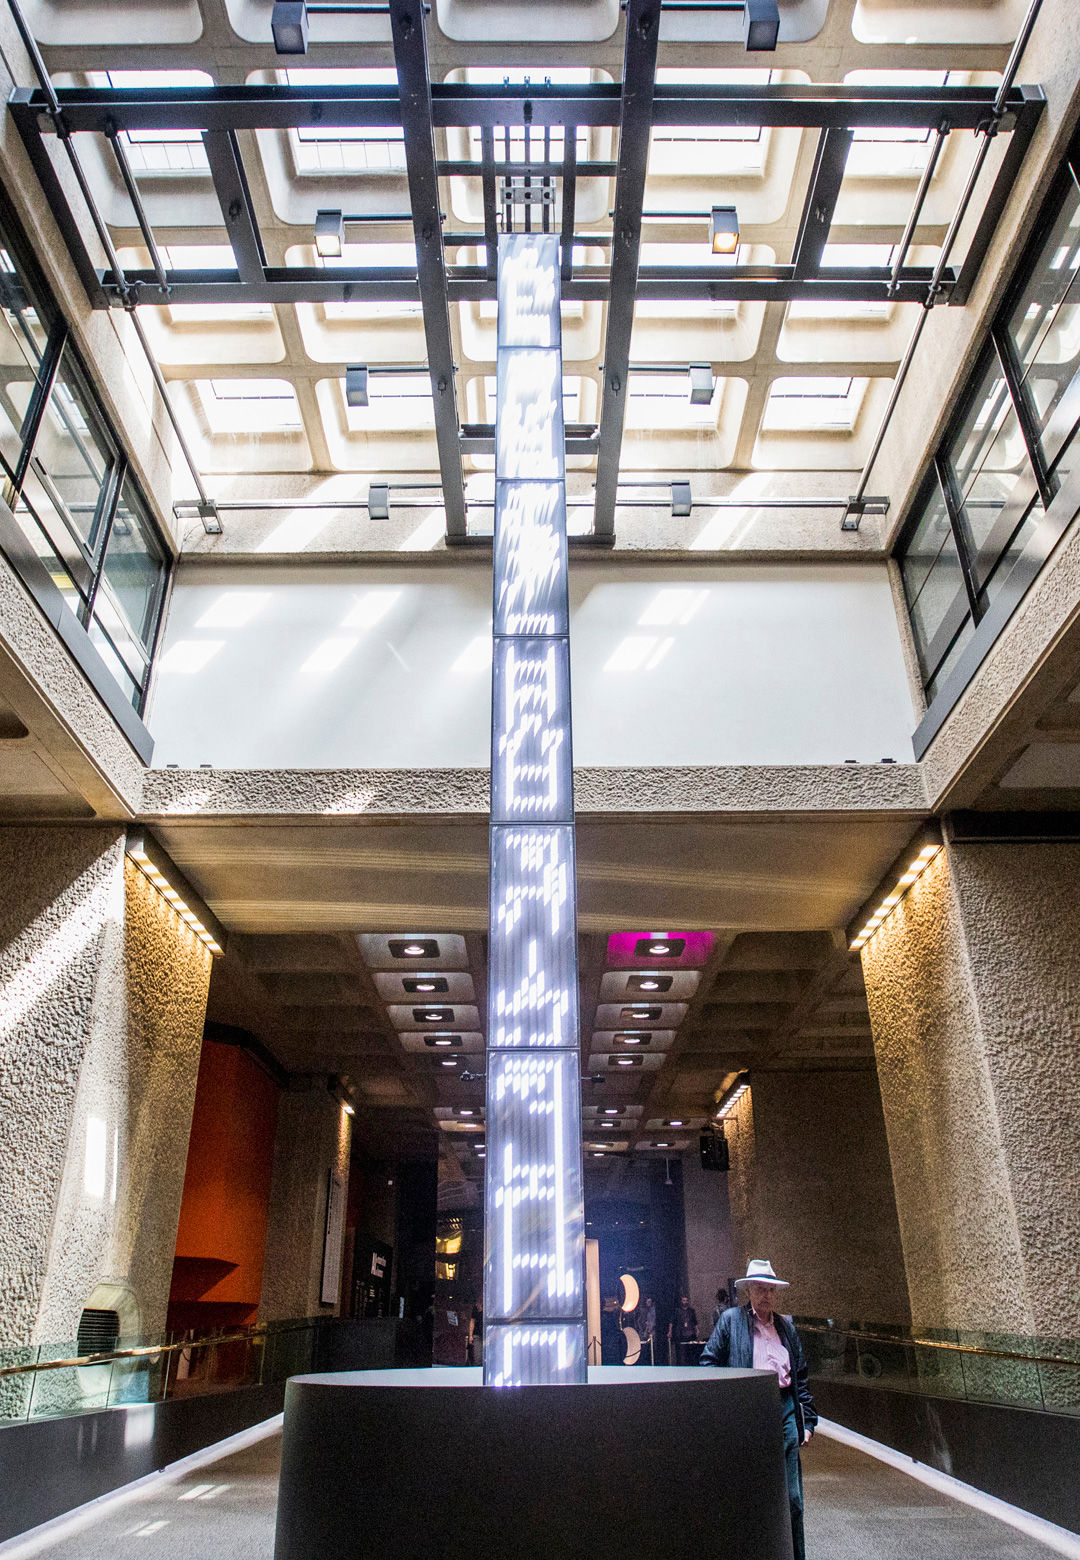 Totem –large-scale, dynamic installation | Chris Salter, Sofian Audry, Takashi Ikegami, Alexandre Saunier, Thomas Spier| AI: More than Human| Barbican Centre, London| STIR